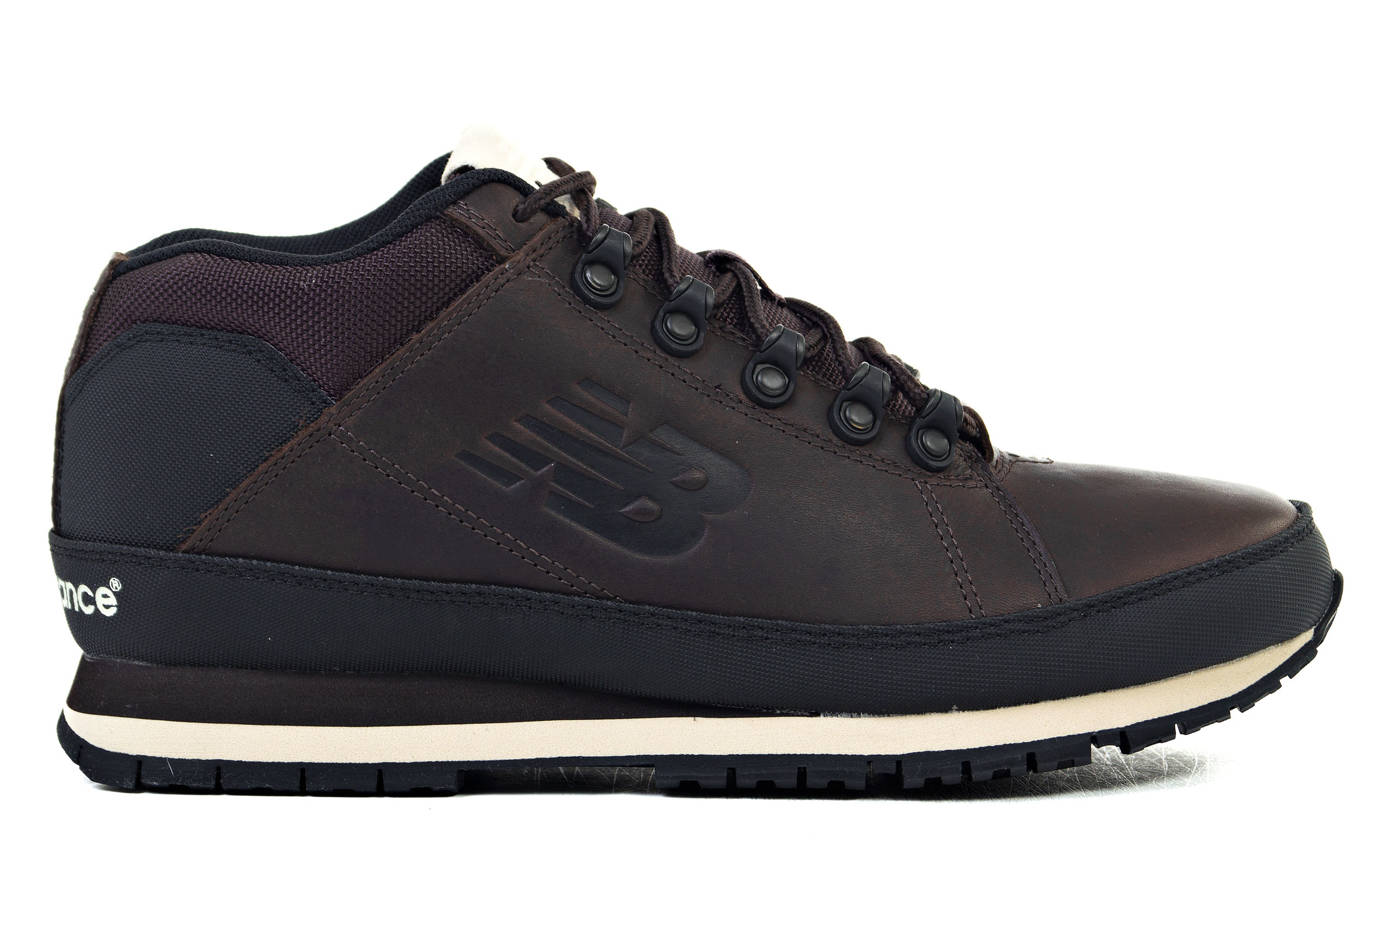 New Balance NB 754 Men's Winter Boots Hiking Shoes Leather Brown ...